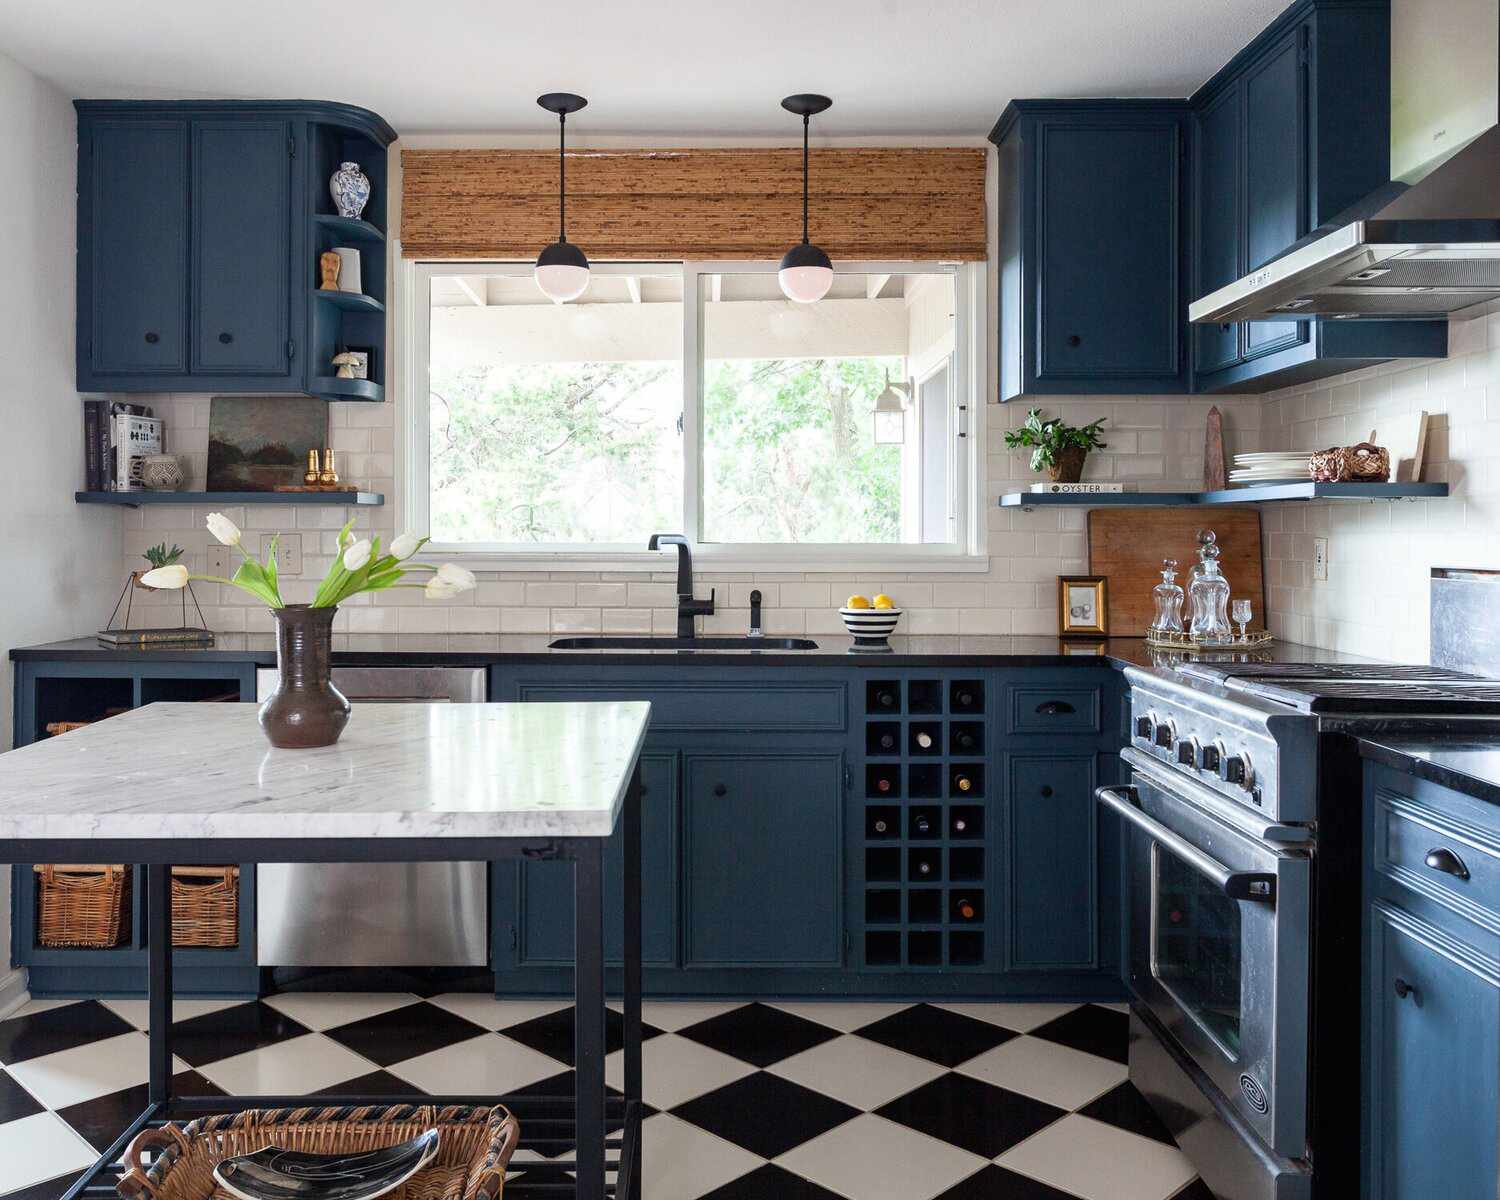 A navy kitchen with black-and-white diner tile floors